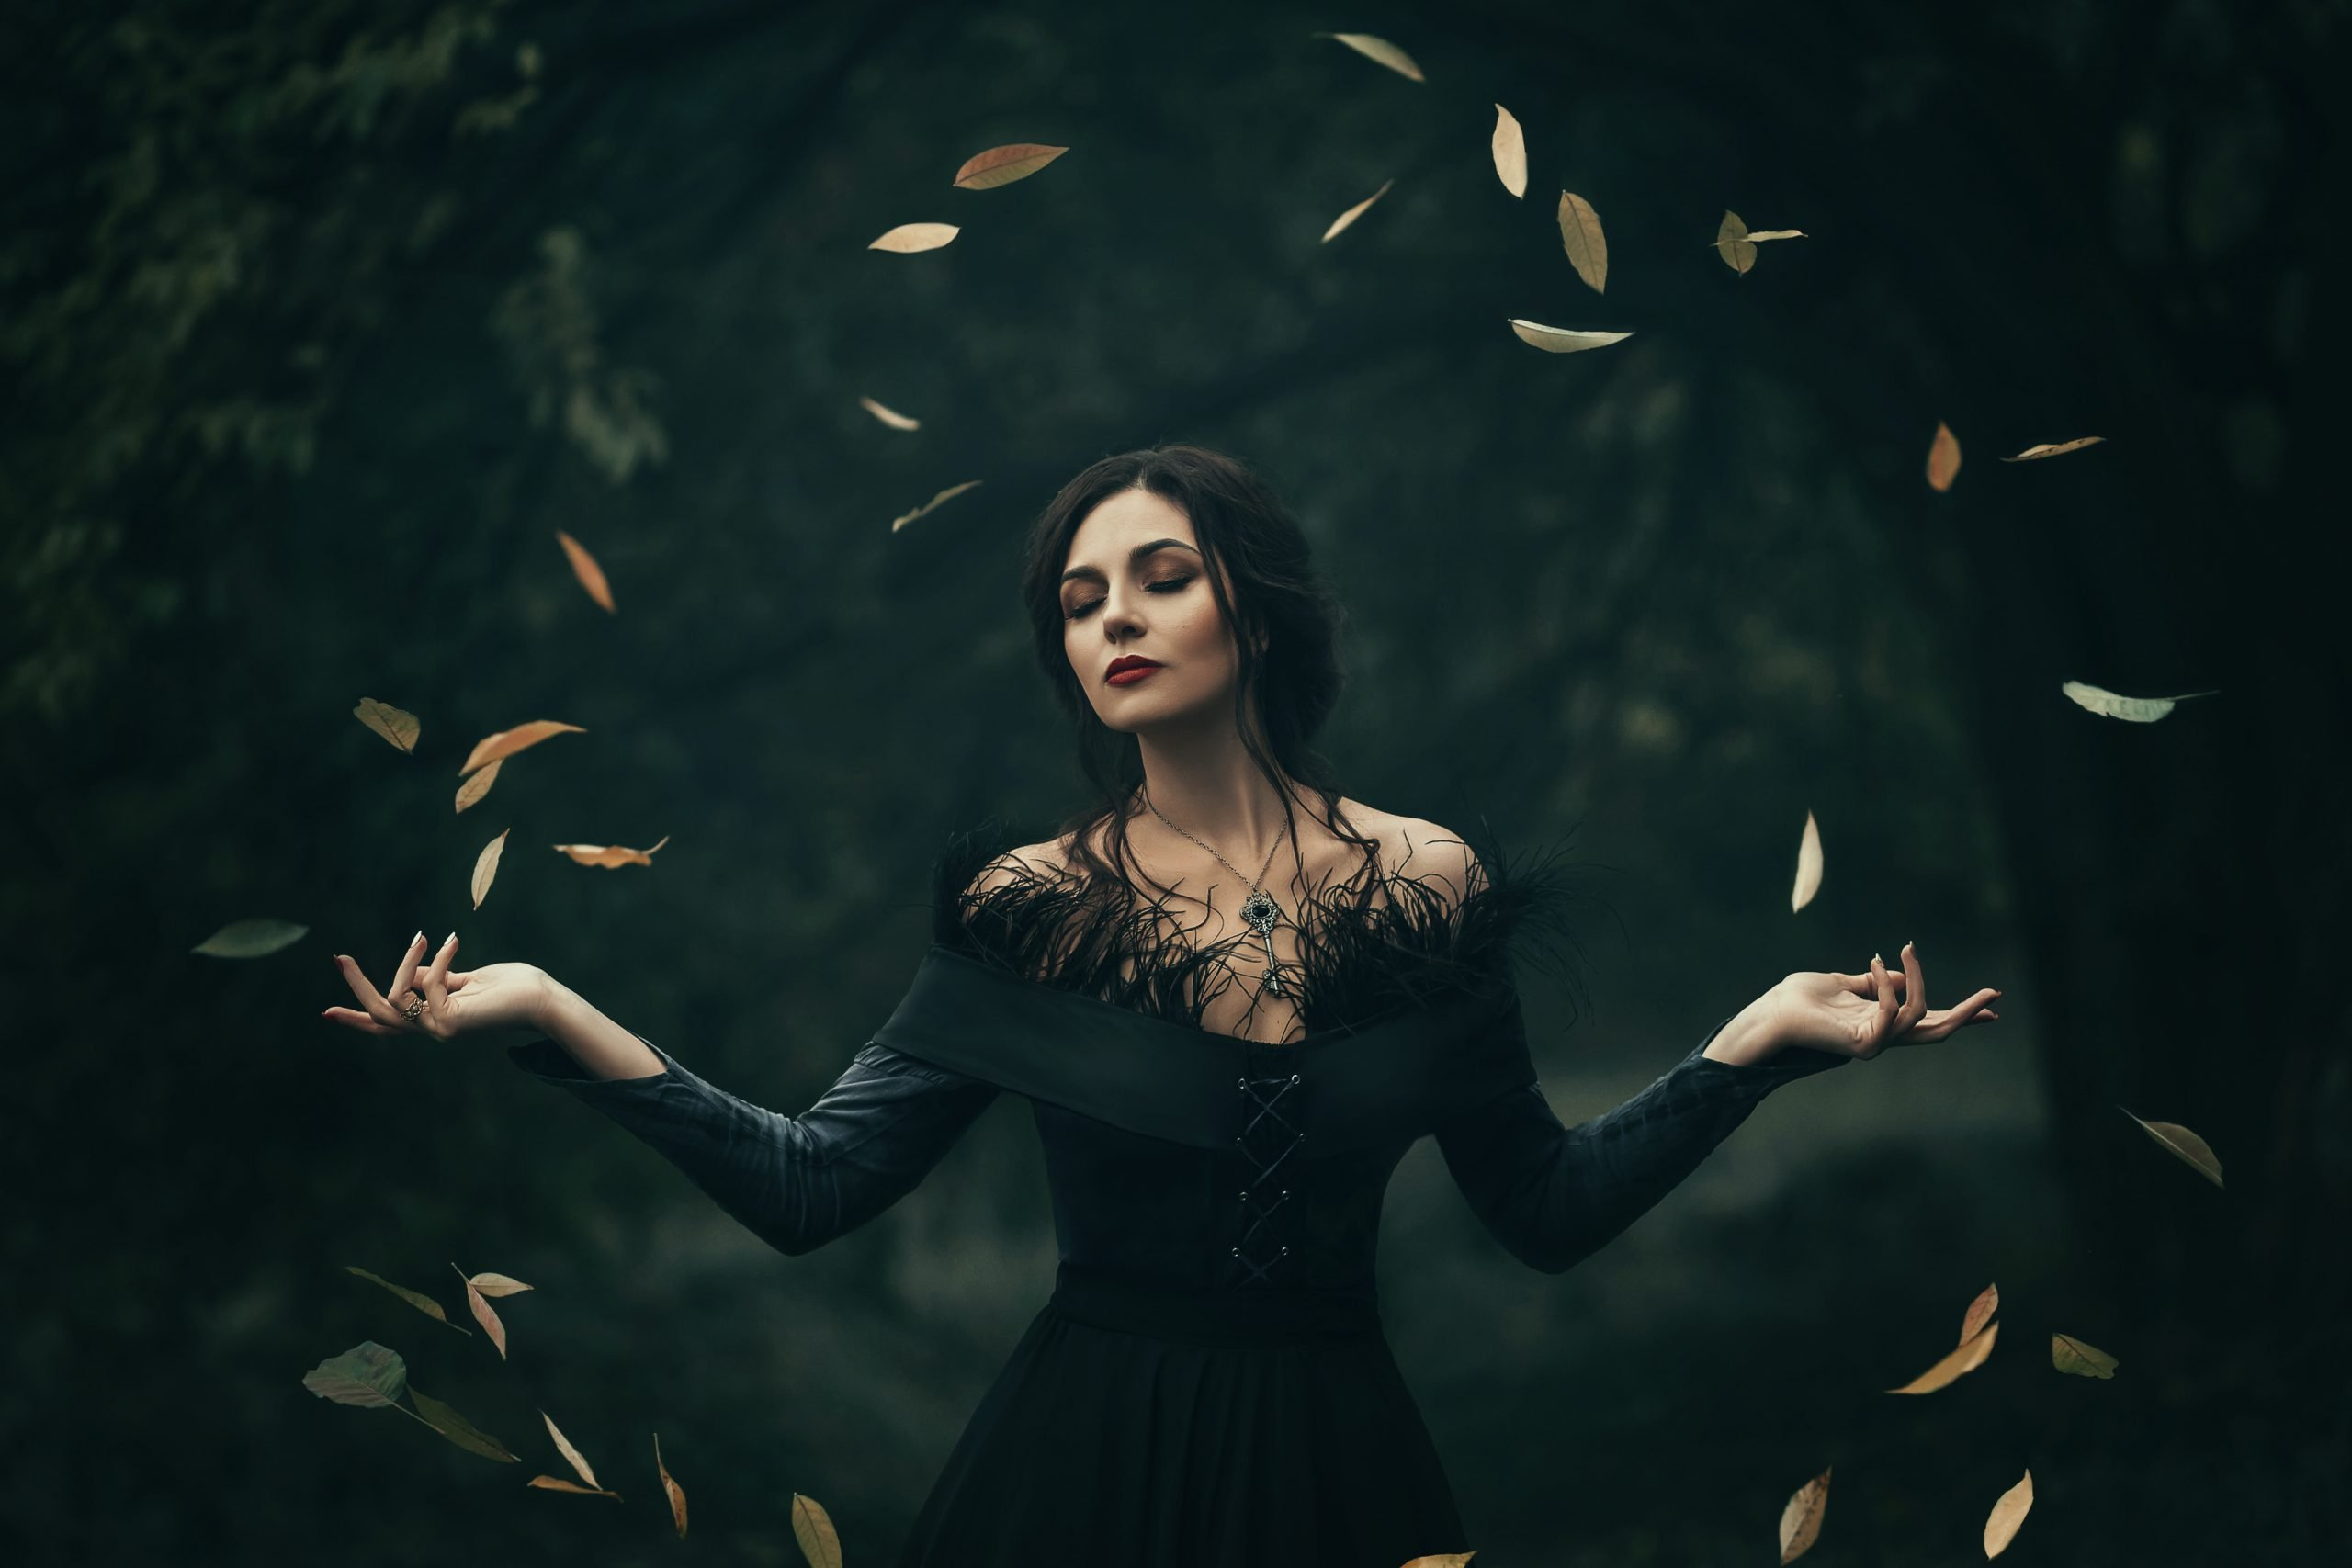 fantasy portrait of beautiful woman in black dress with bat wing overlay